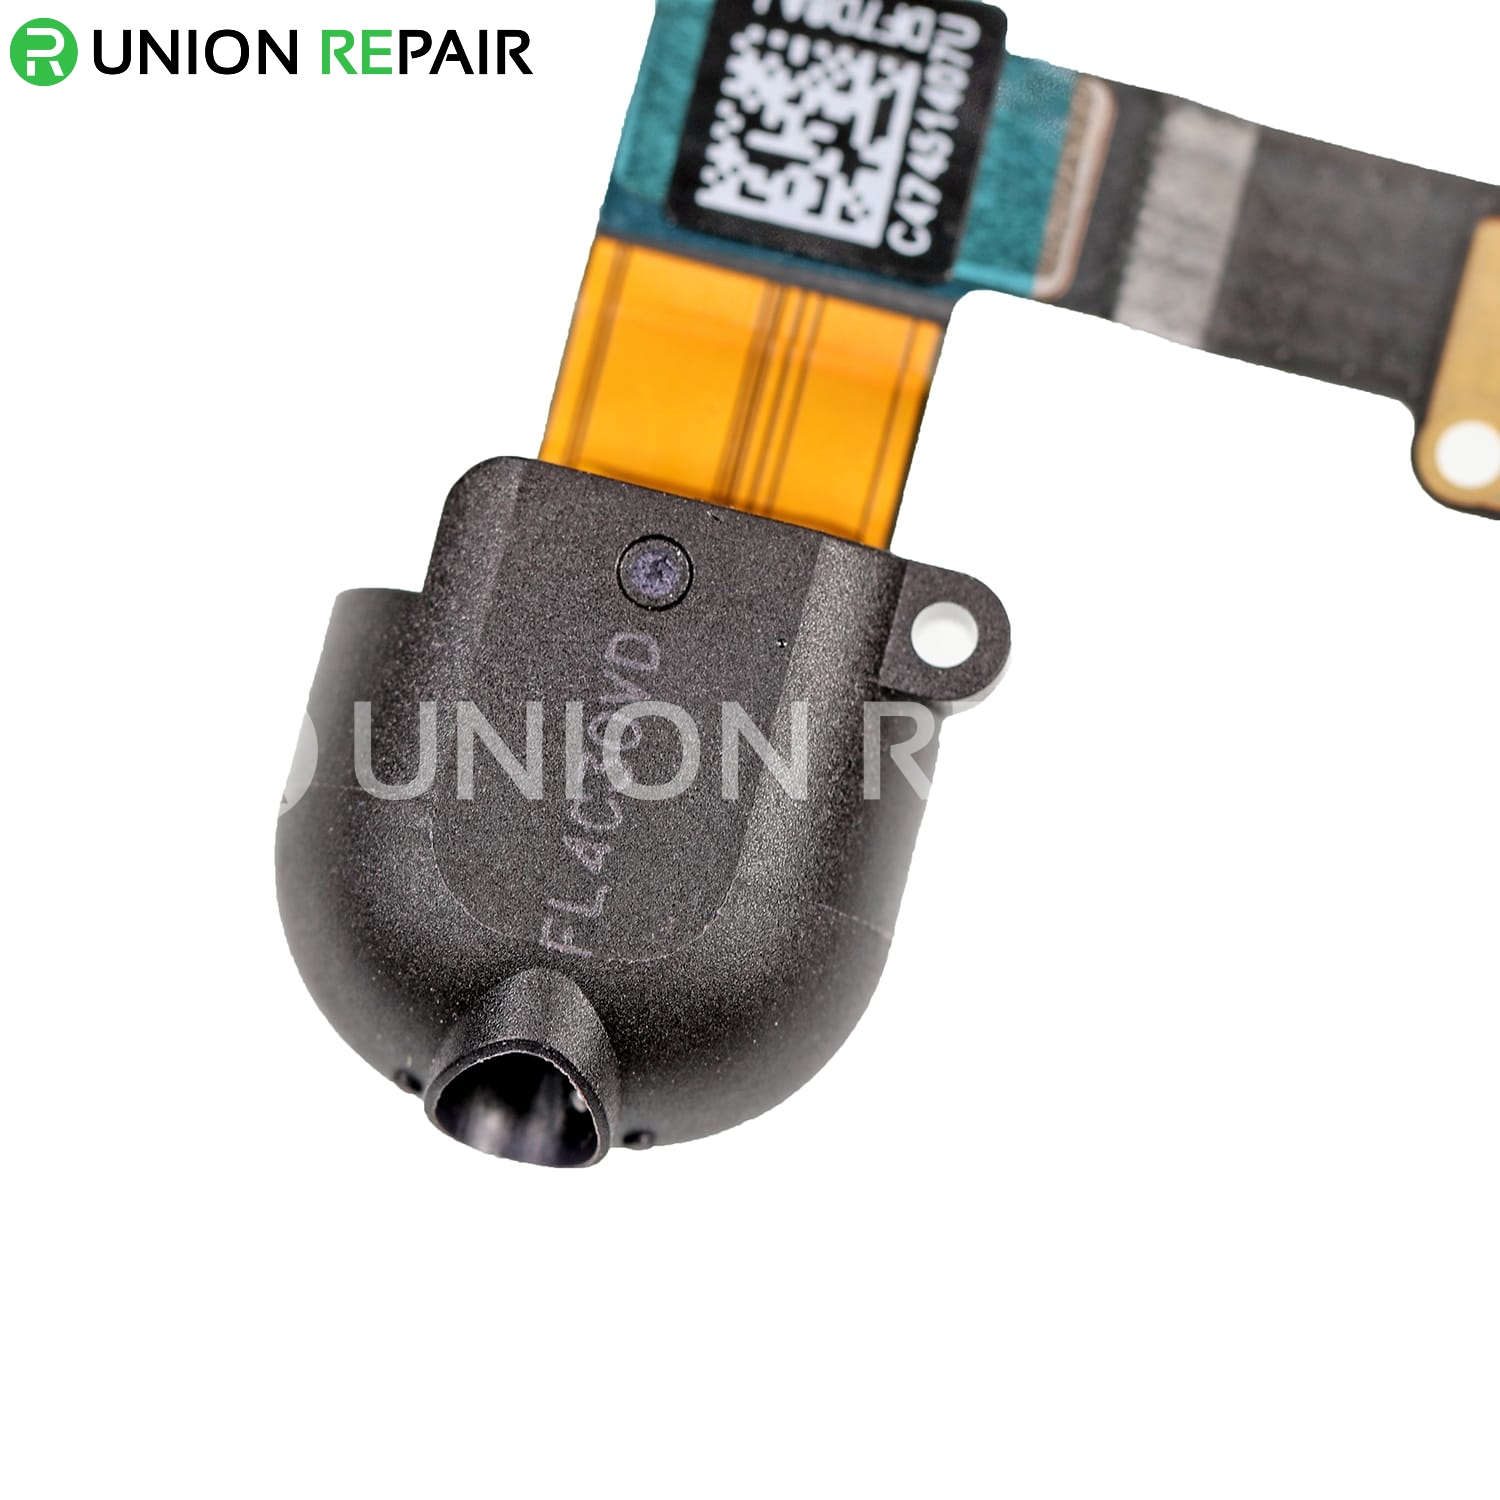 Replacement for iPad 5 Audio Earphone Jack Flex Cable - Black